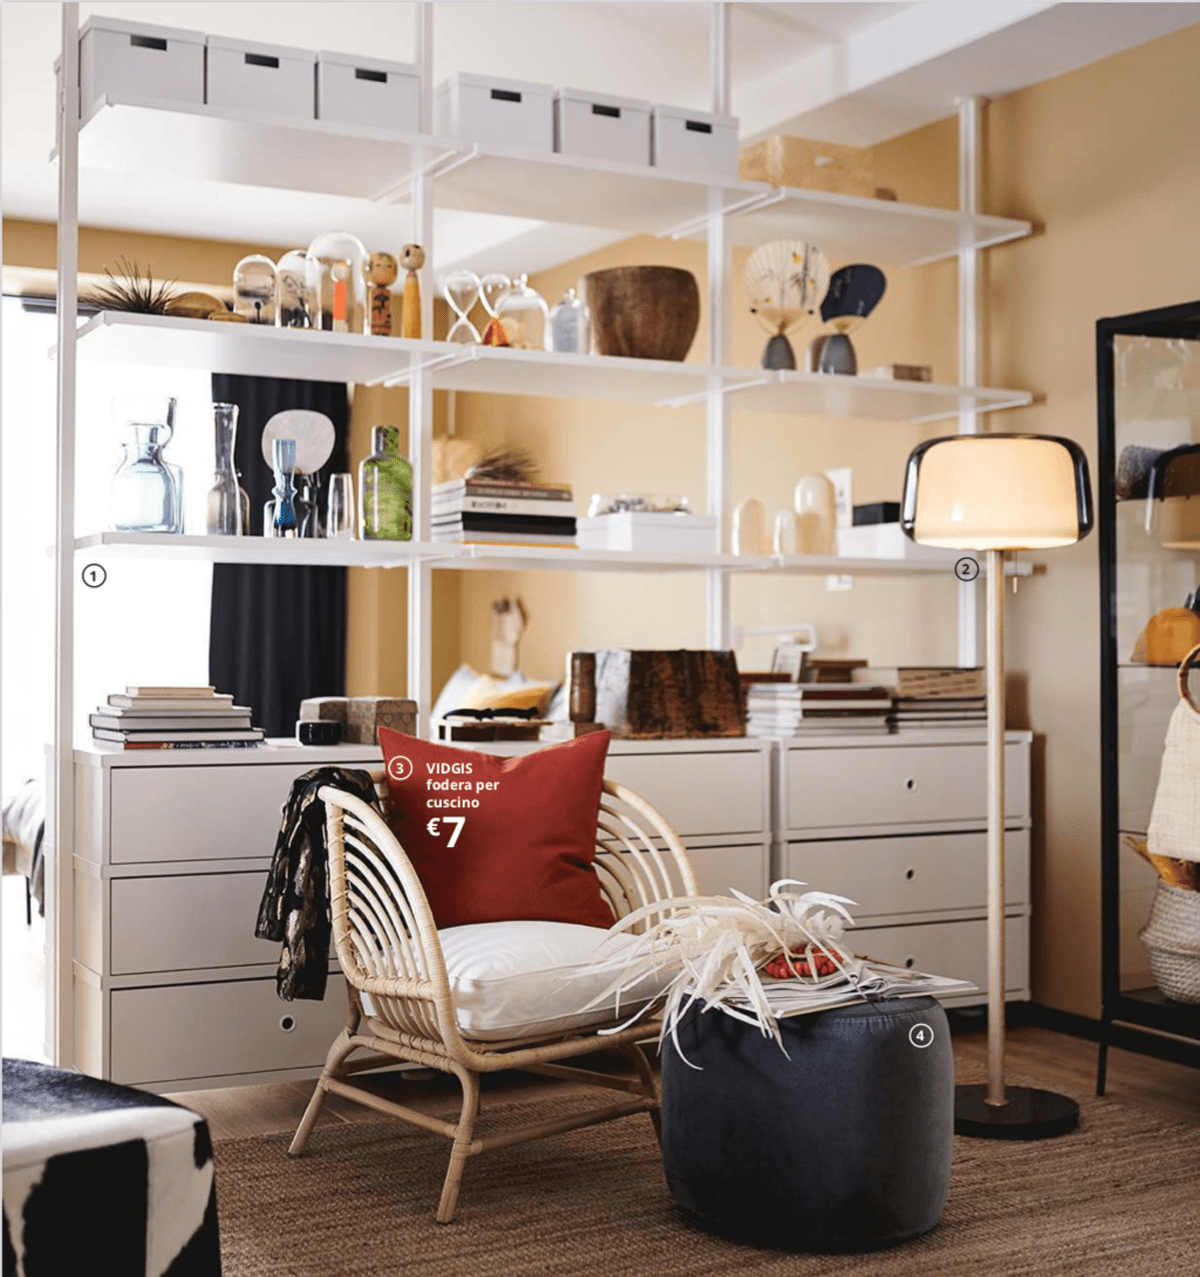 Ikea Catalogue 2020 The Doubts It Raised And What I Liked